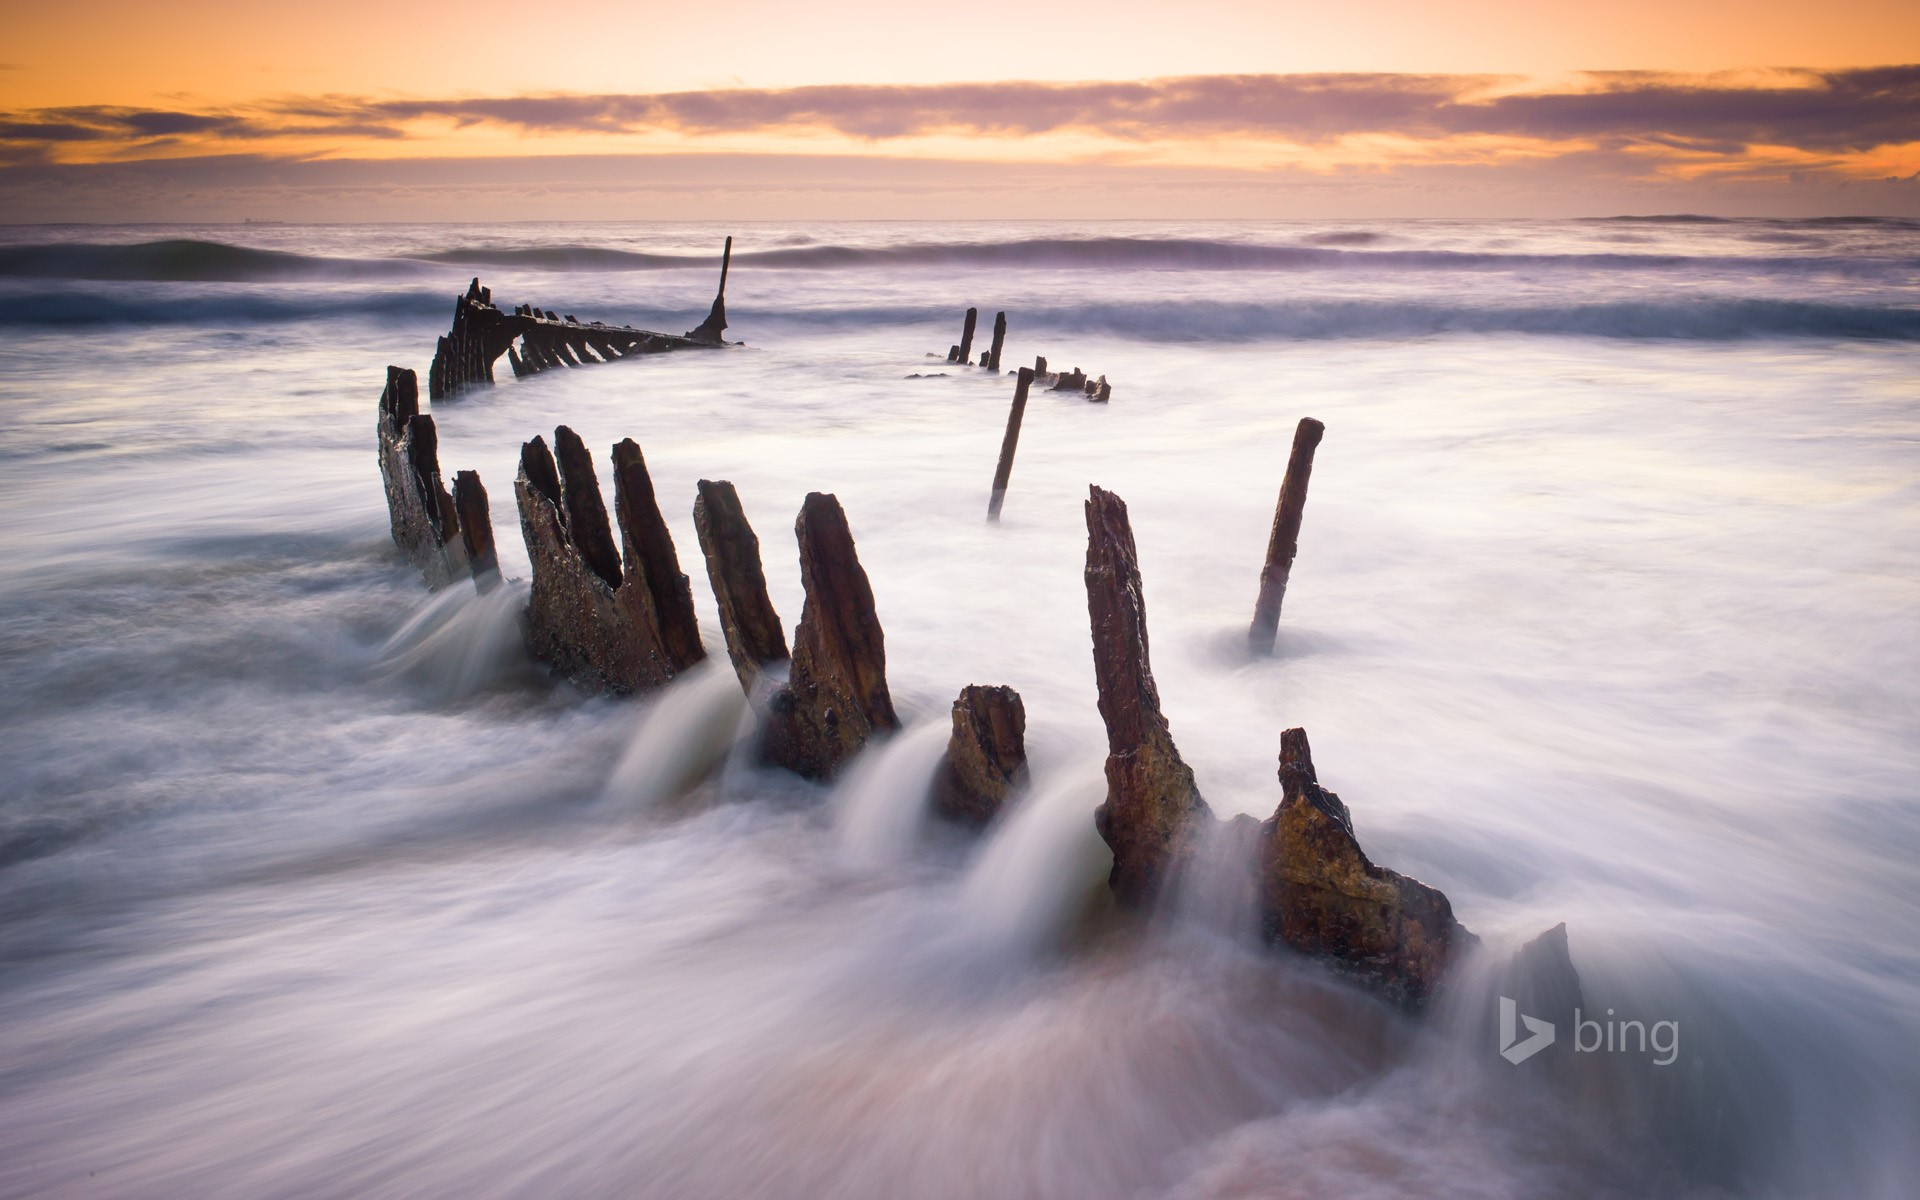 Wreck of SS Dicky at Dicky Beach in Caloundra, Queensland, Australia